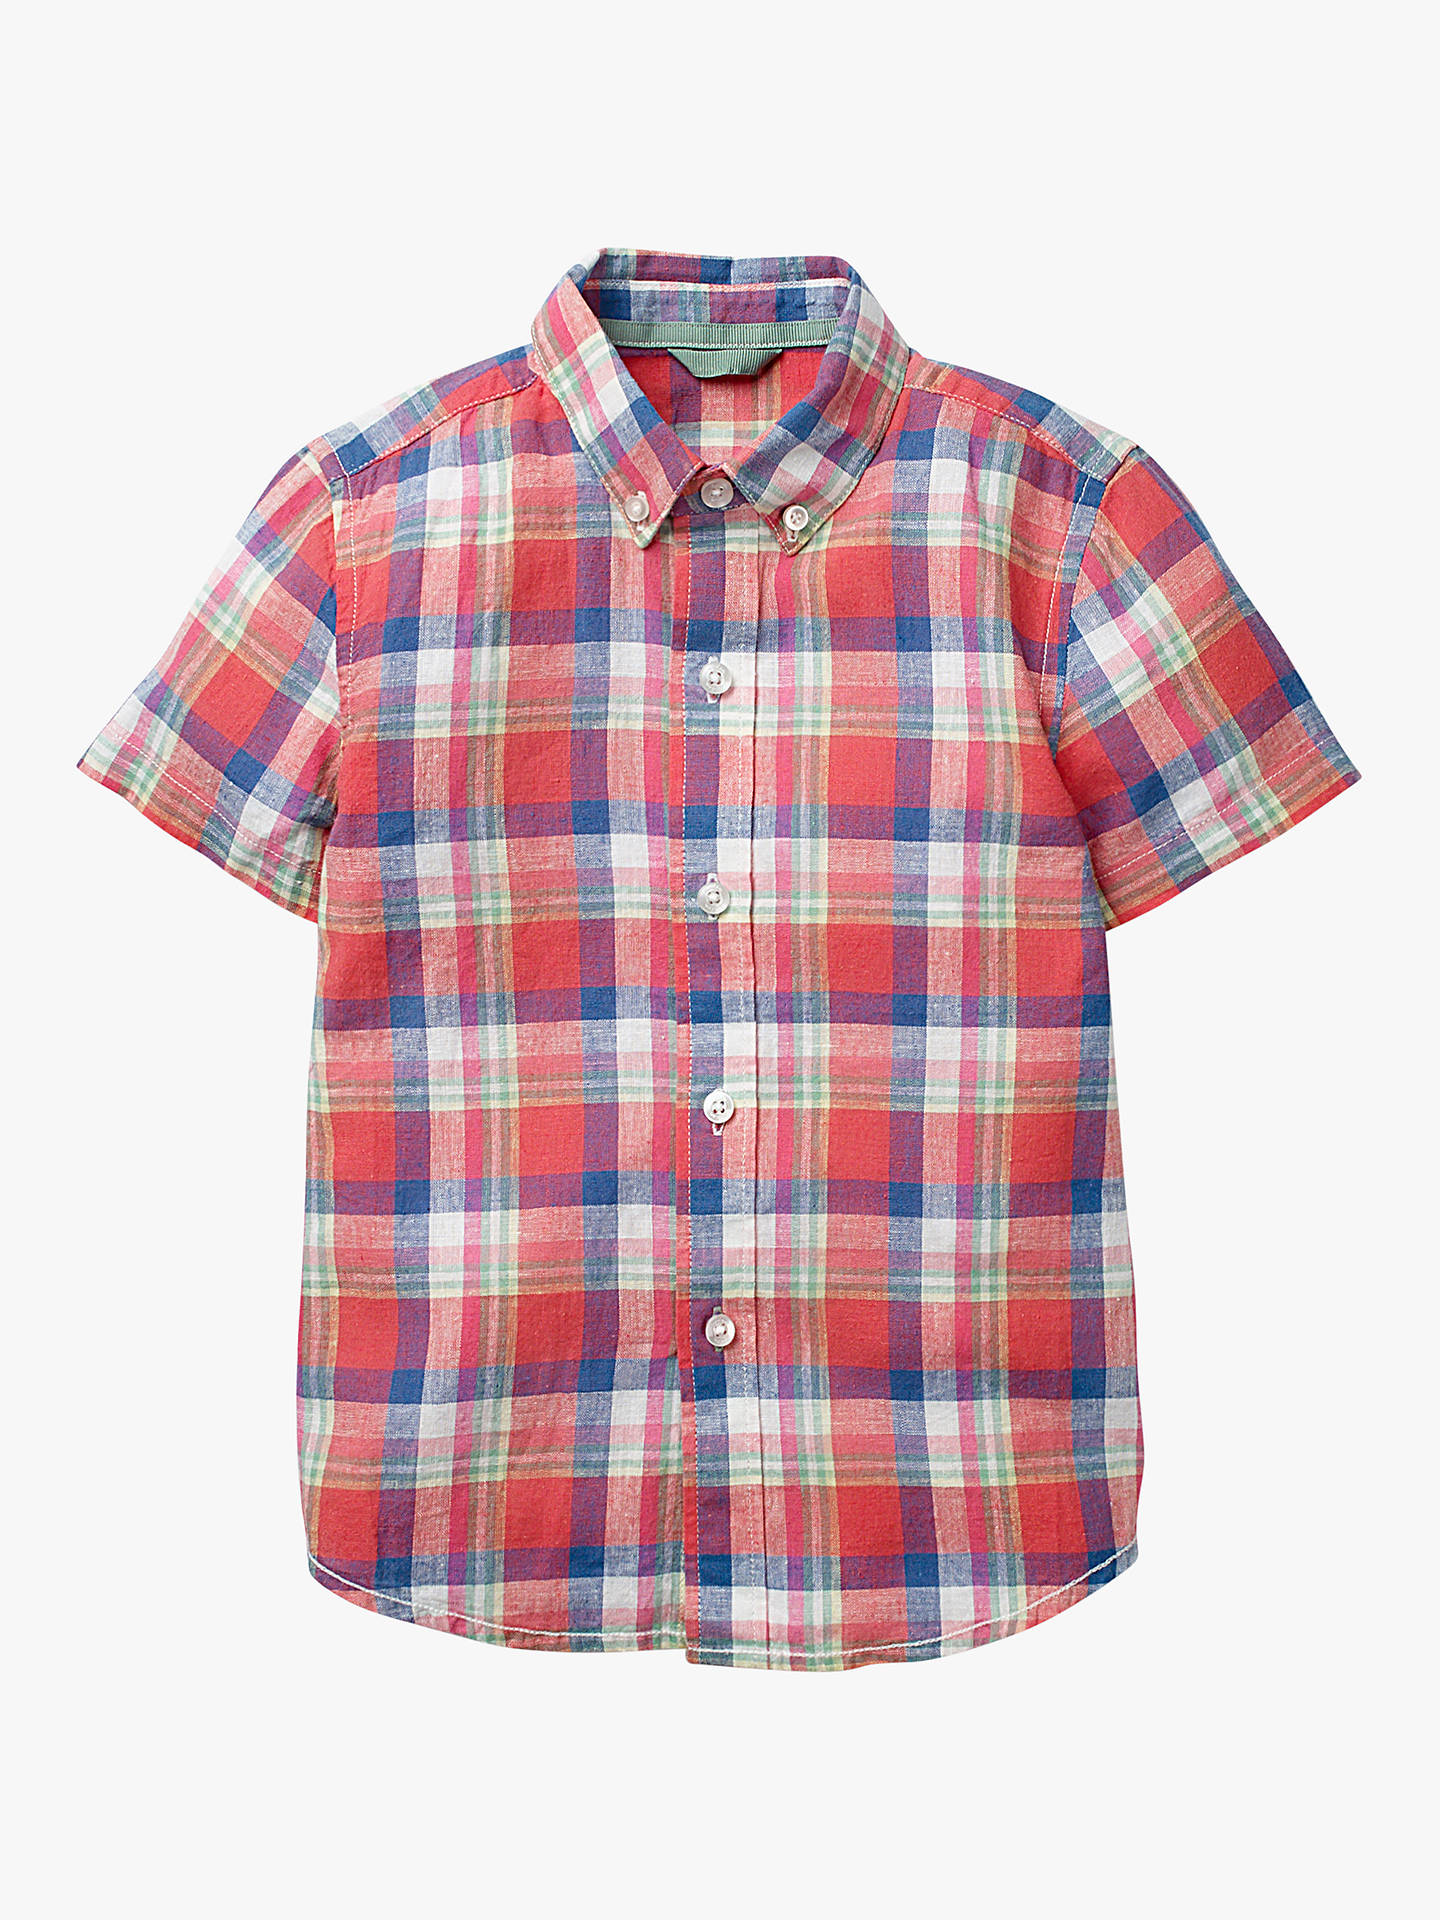 52e264ae1 Mini Boden Boys  Dyed Check Shirt